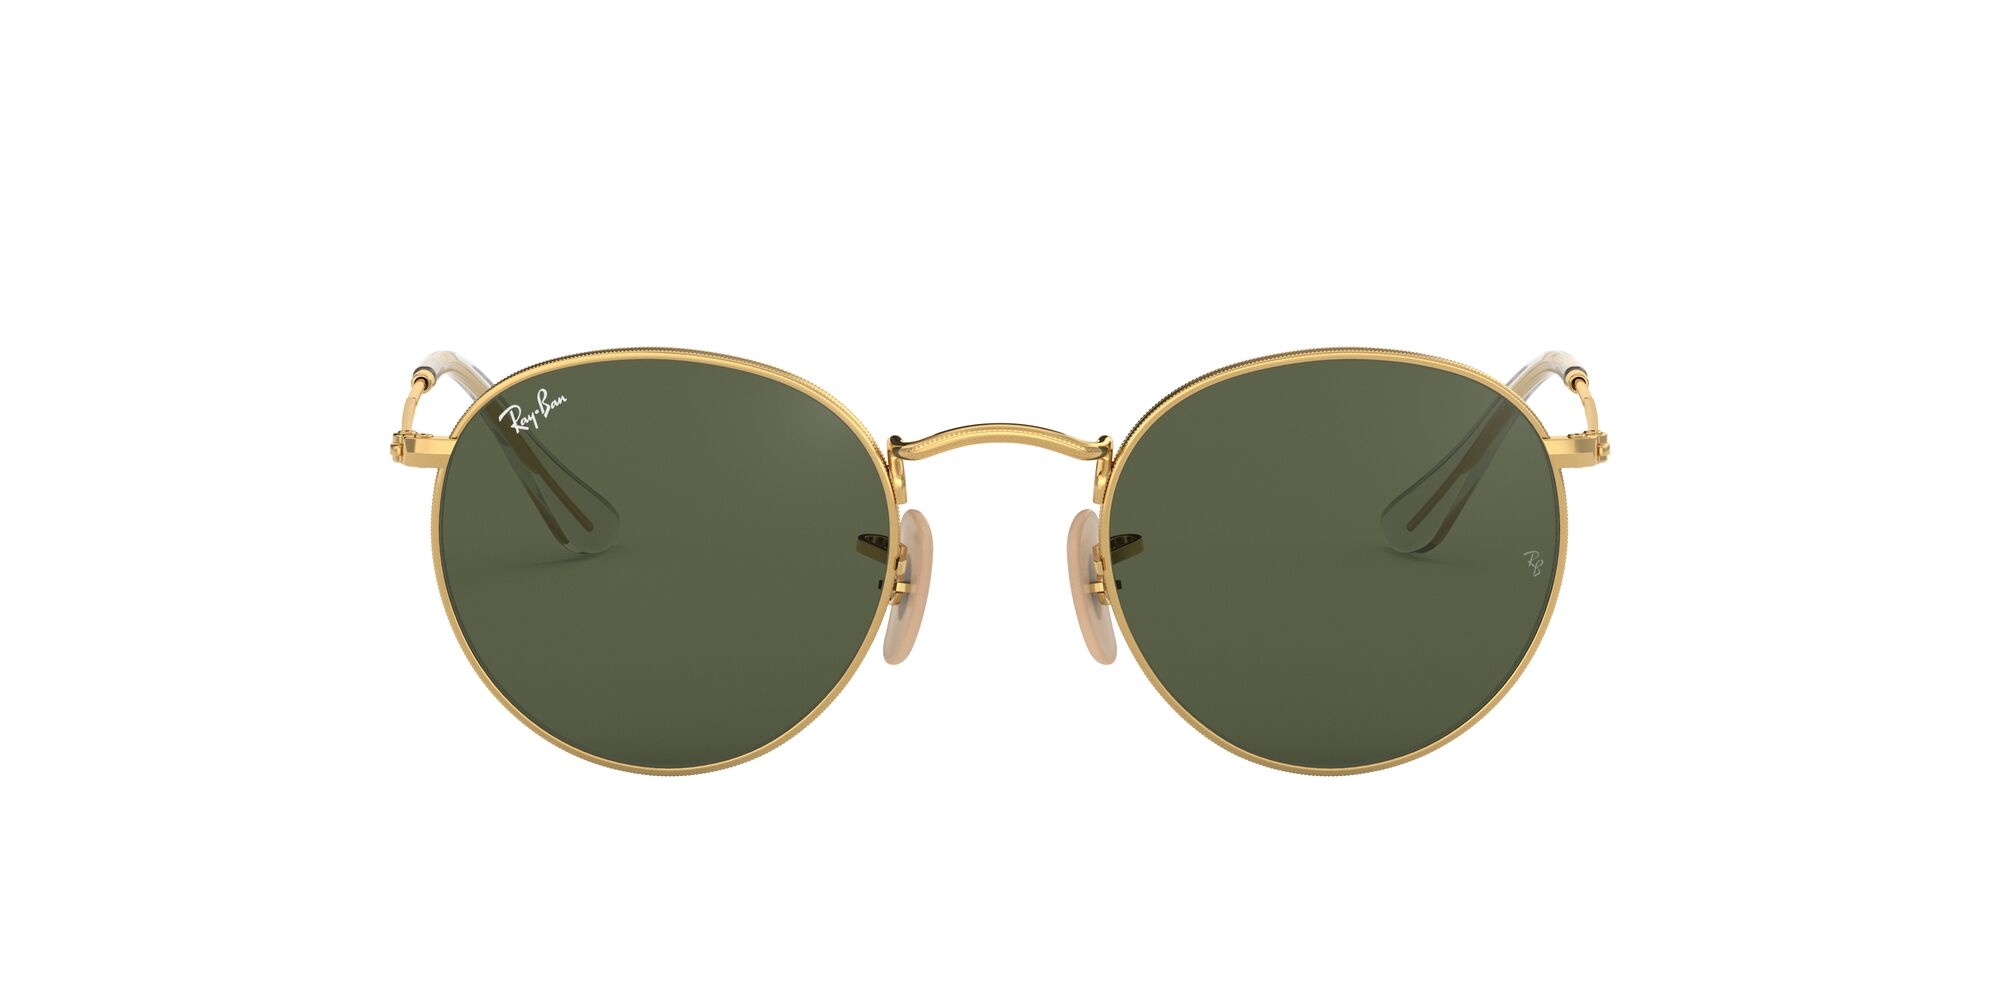 Front Ray-Ban Ray-Ban 0RB3447N 001 50/21 Goud/Groen